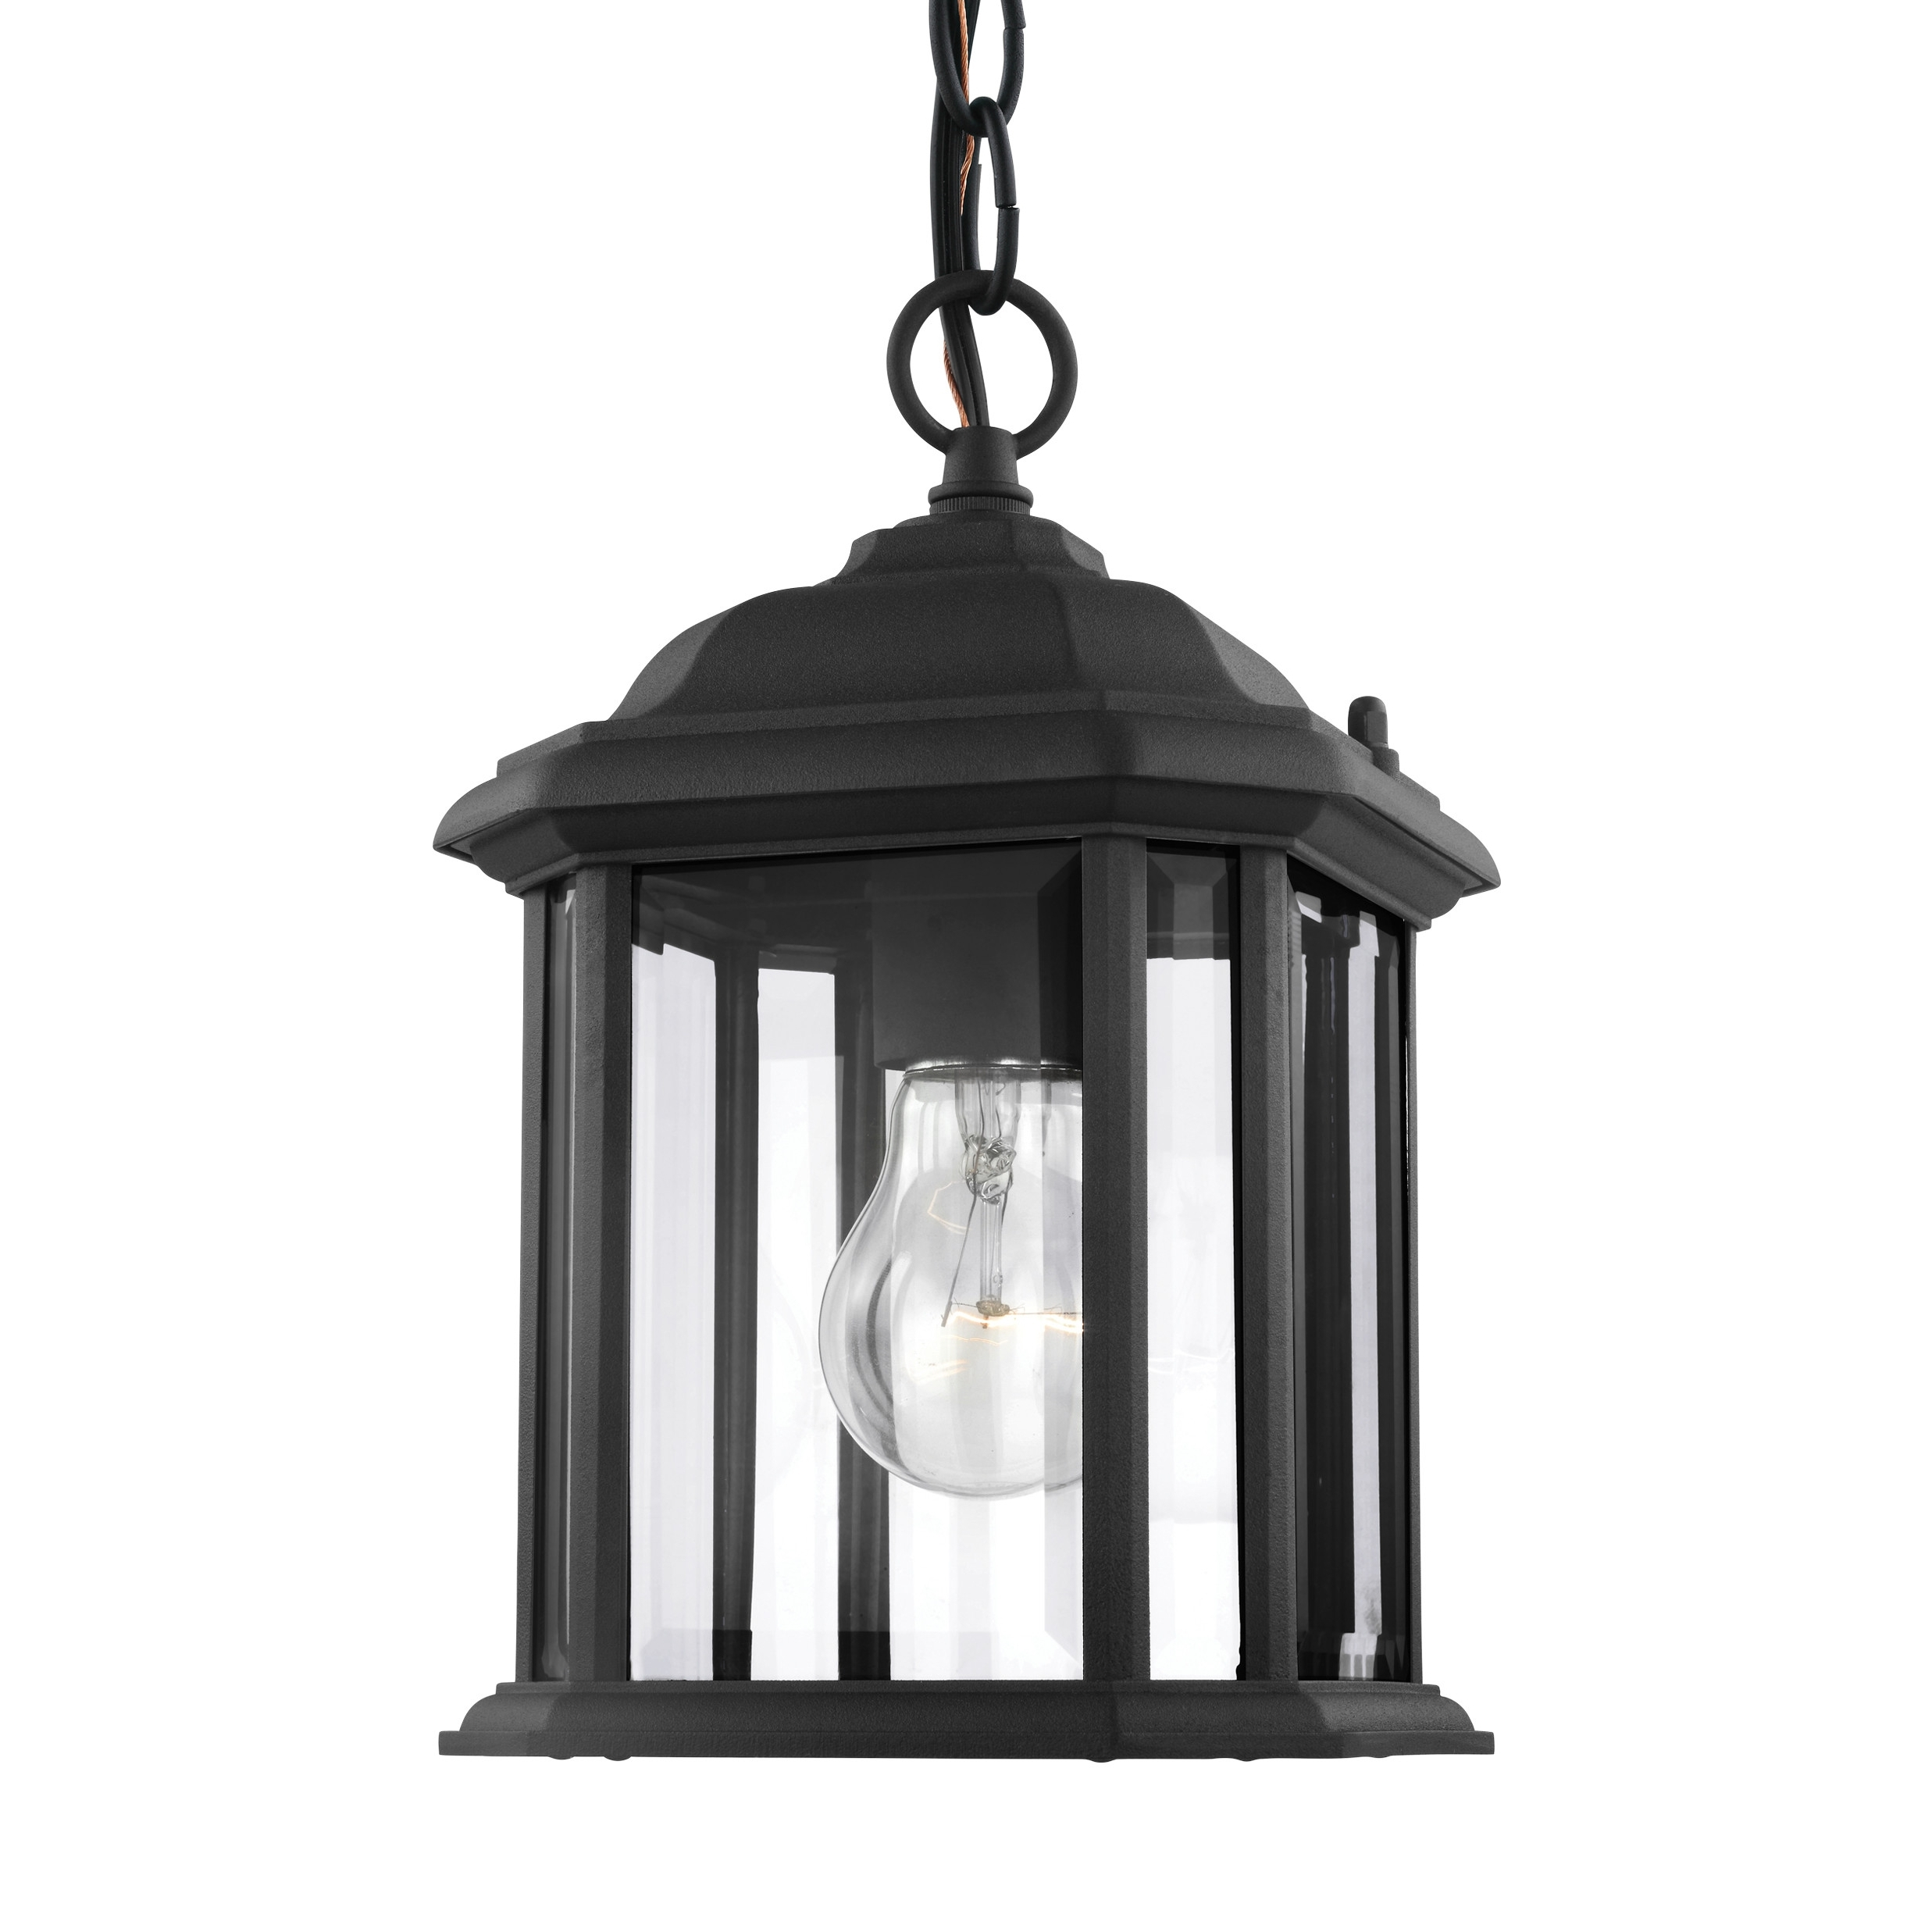 Most Recent Outdoor Hanging Lights Wayfair Supply Kent 1 Light Lantern ~ Loversiq In Wayfair Outdoor Hanging Lights (View 7 of 20)